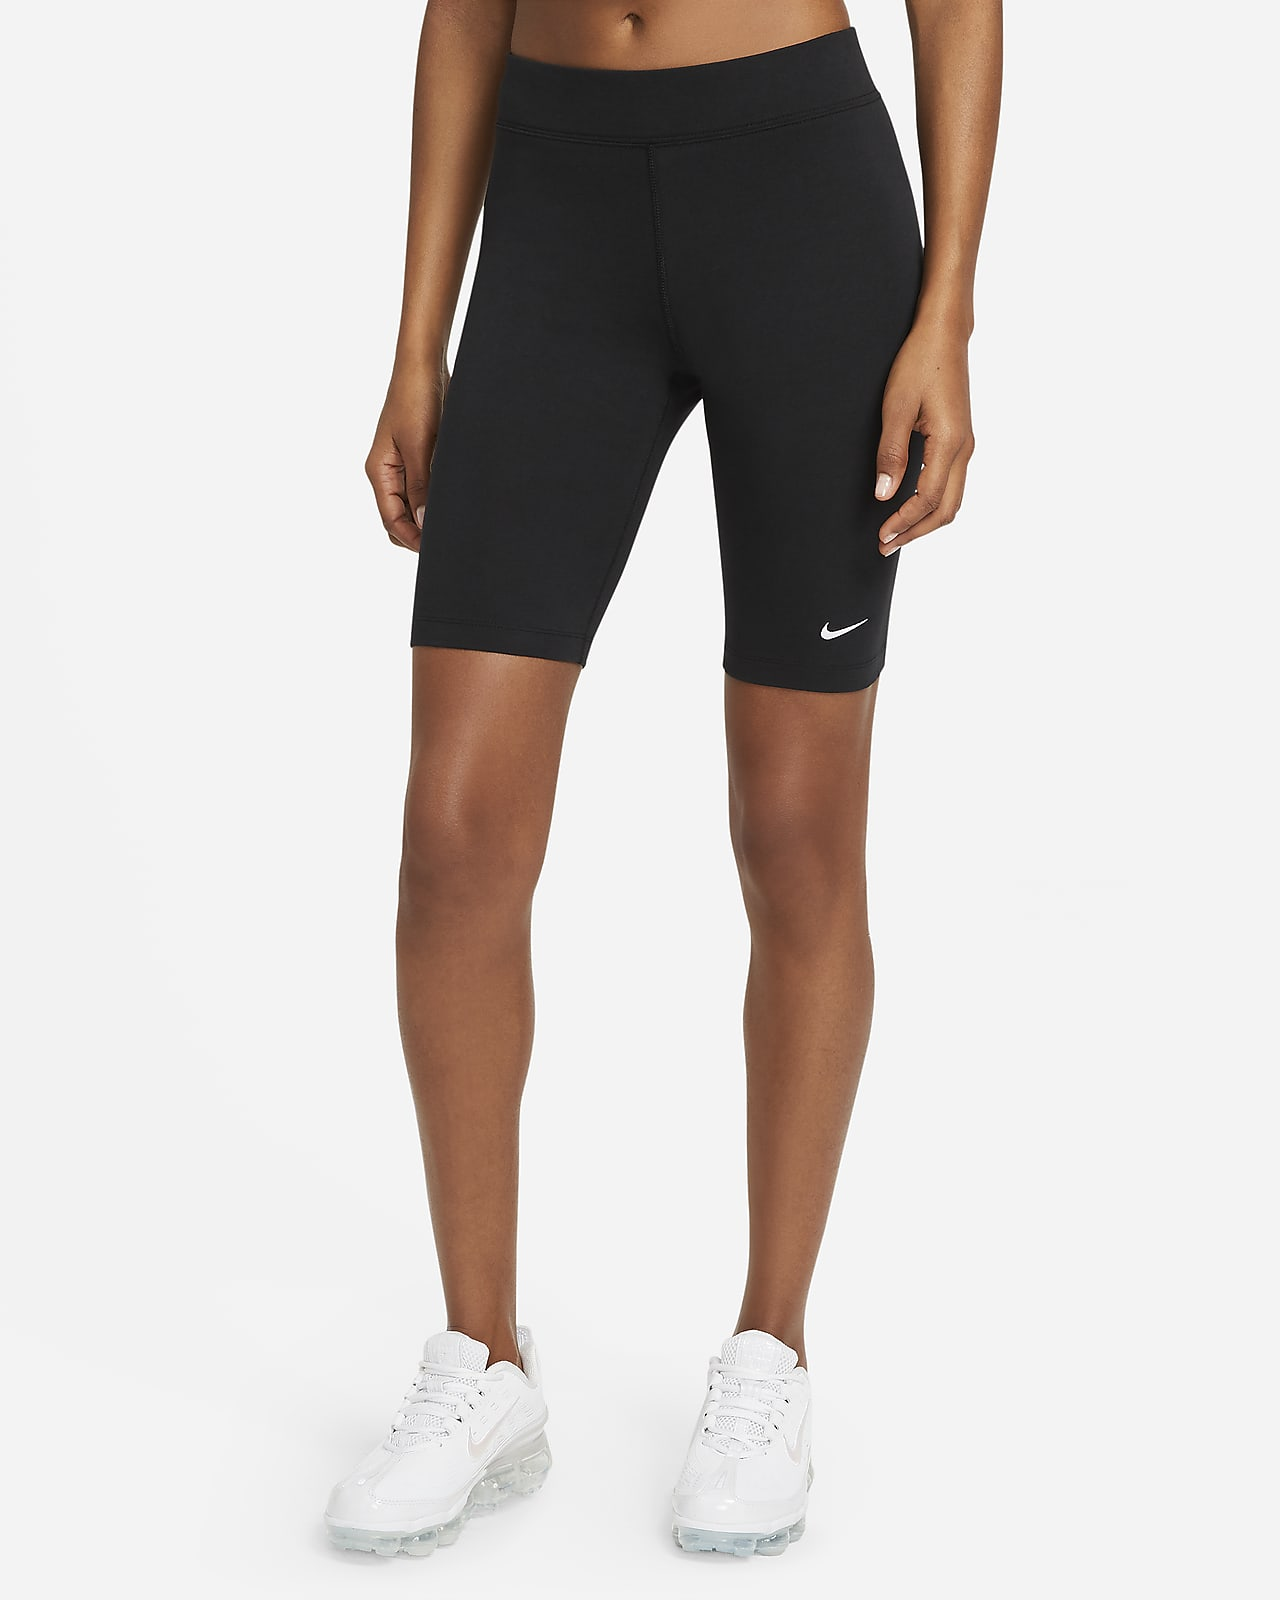 Nike Sportswear Essential Women's Bike Shorts